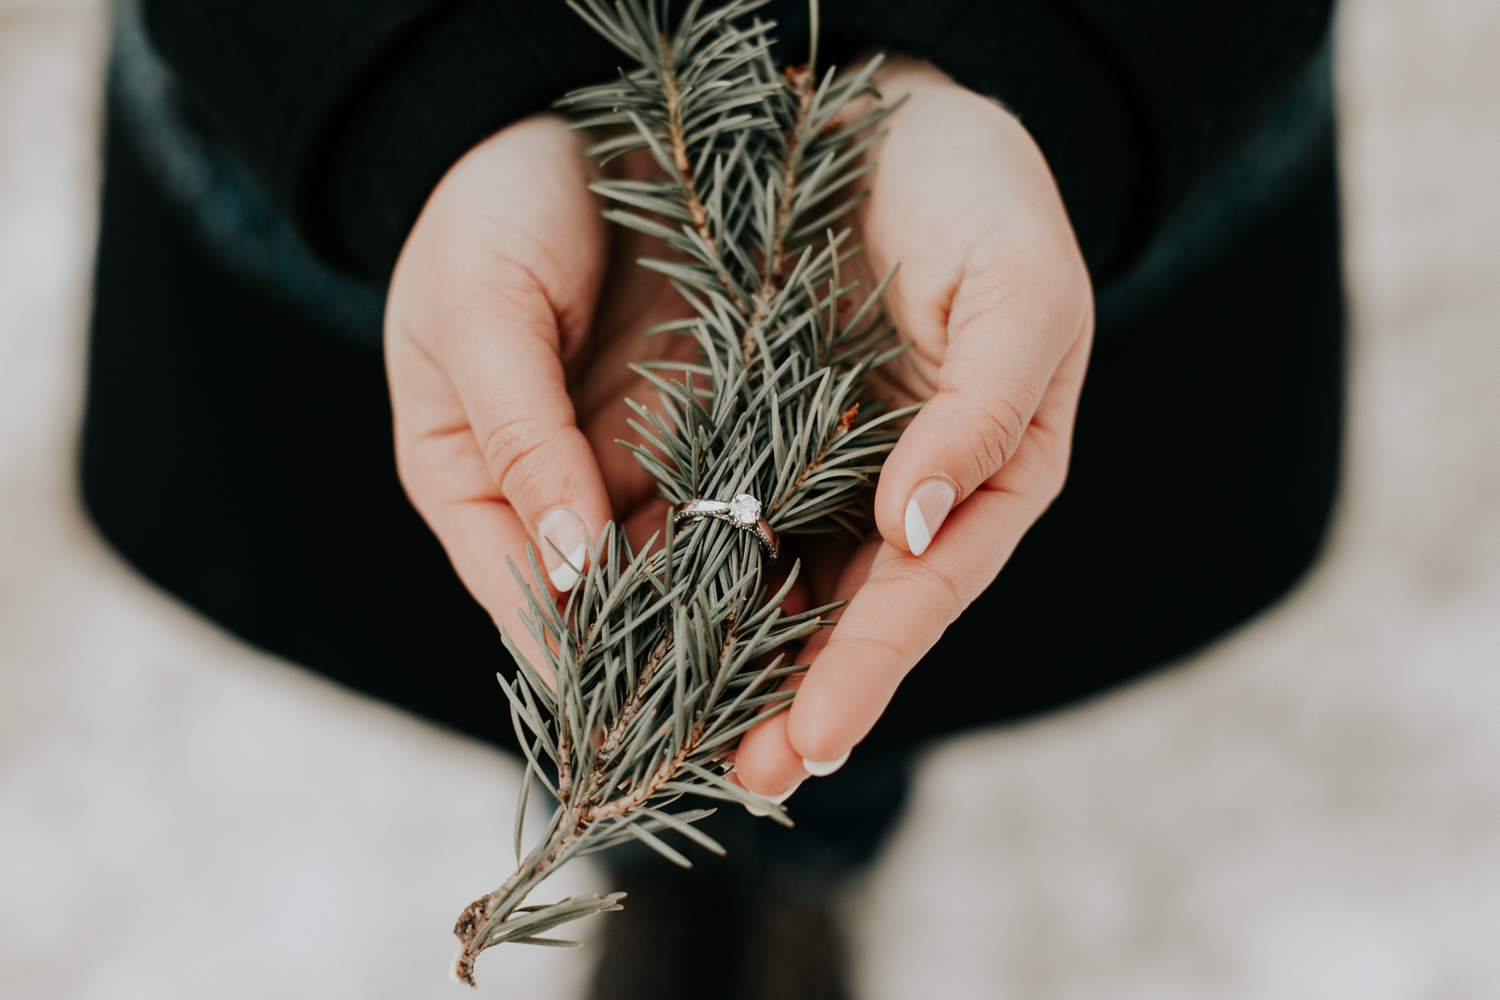 waterton-photographer-love-and-be-loved-photography-trent-danielle-engagement-winter-picture-image-photo-56.jpg